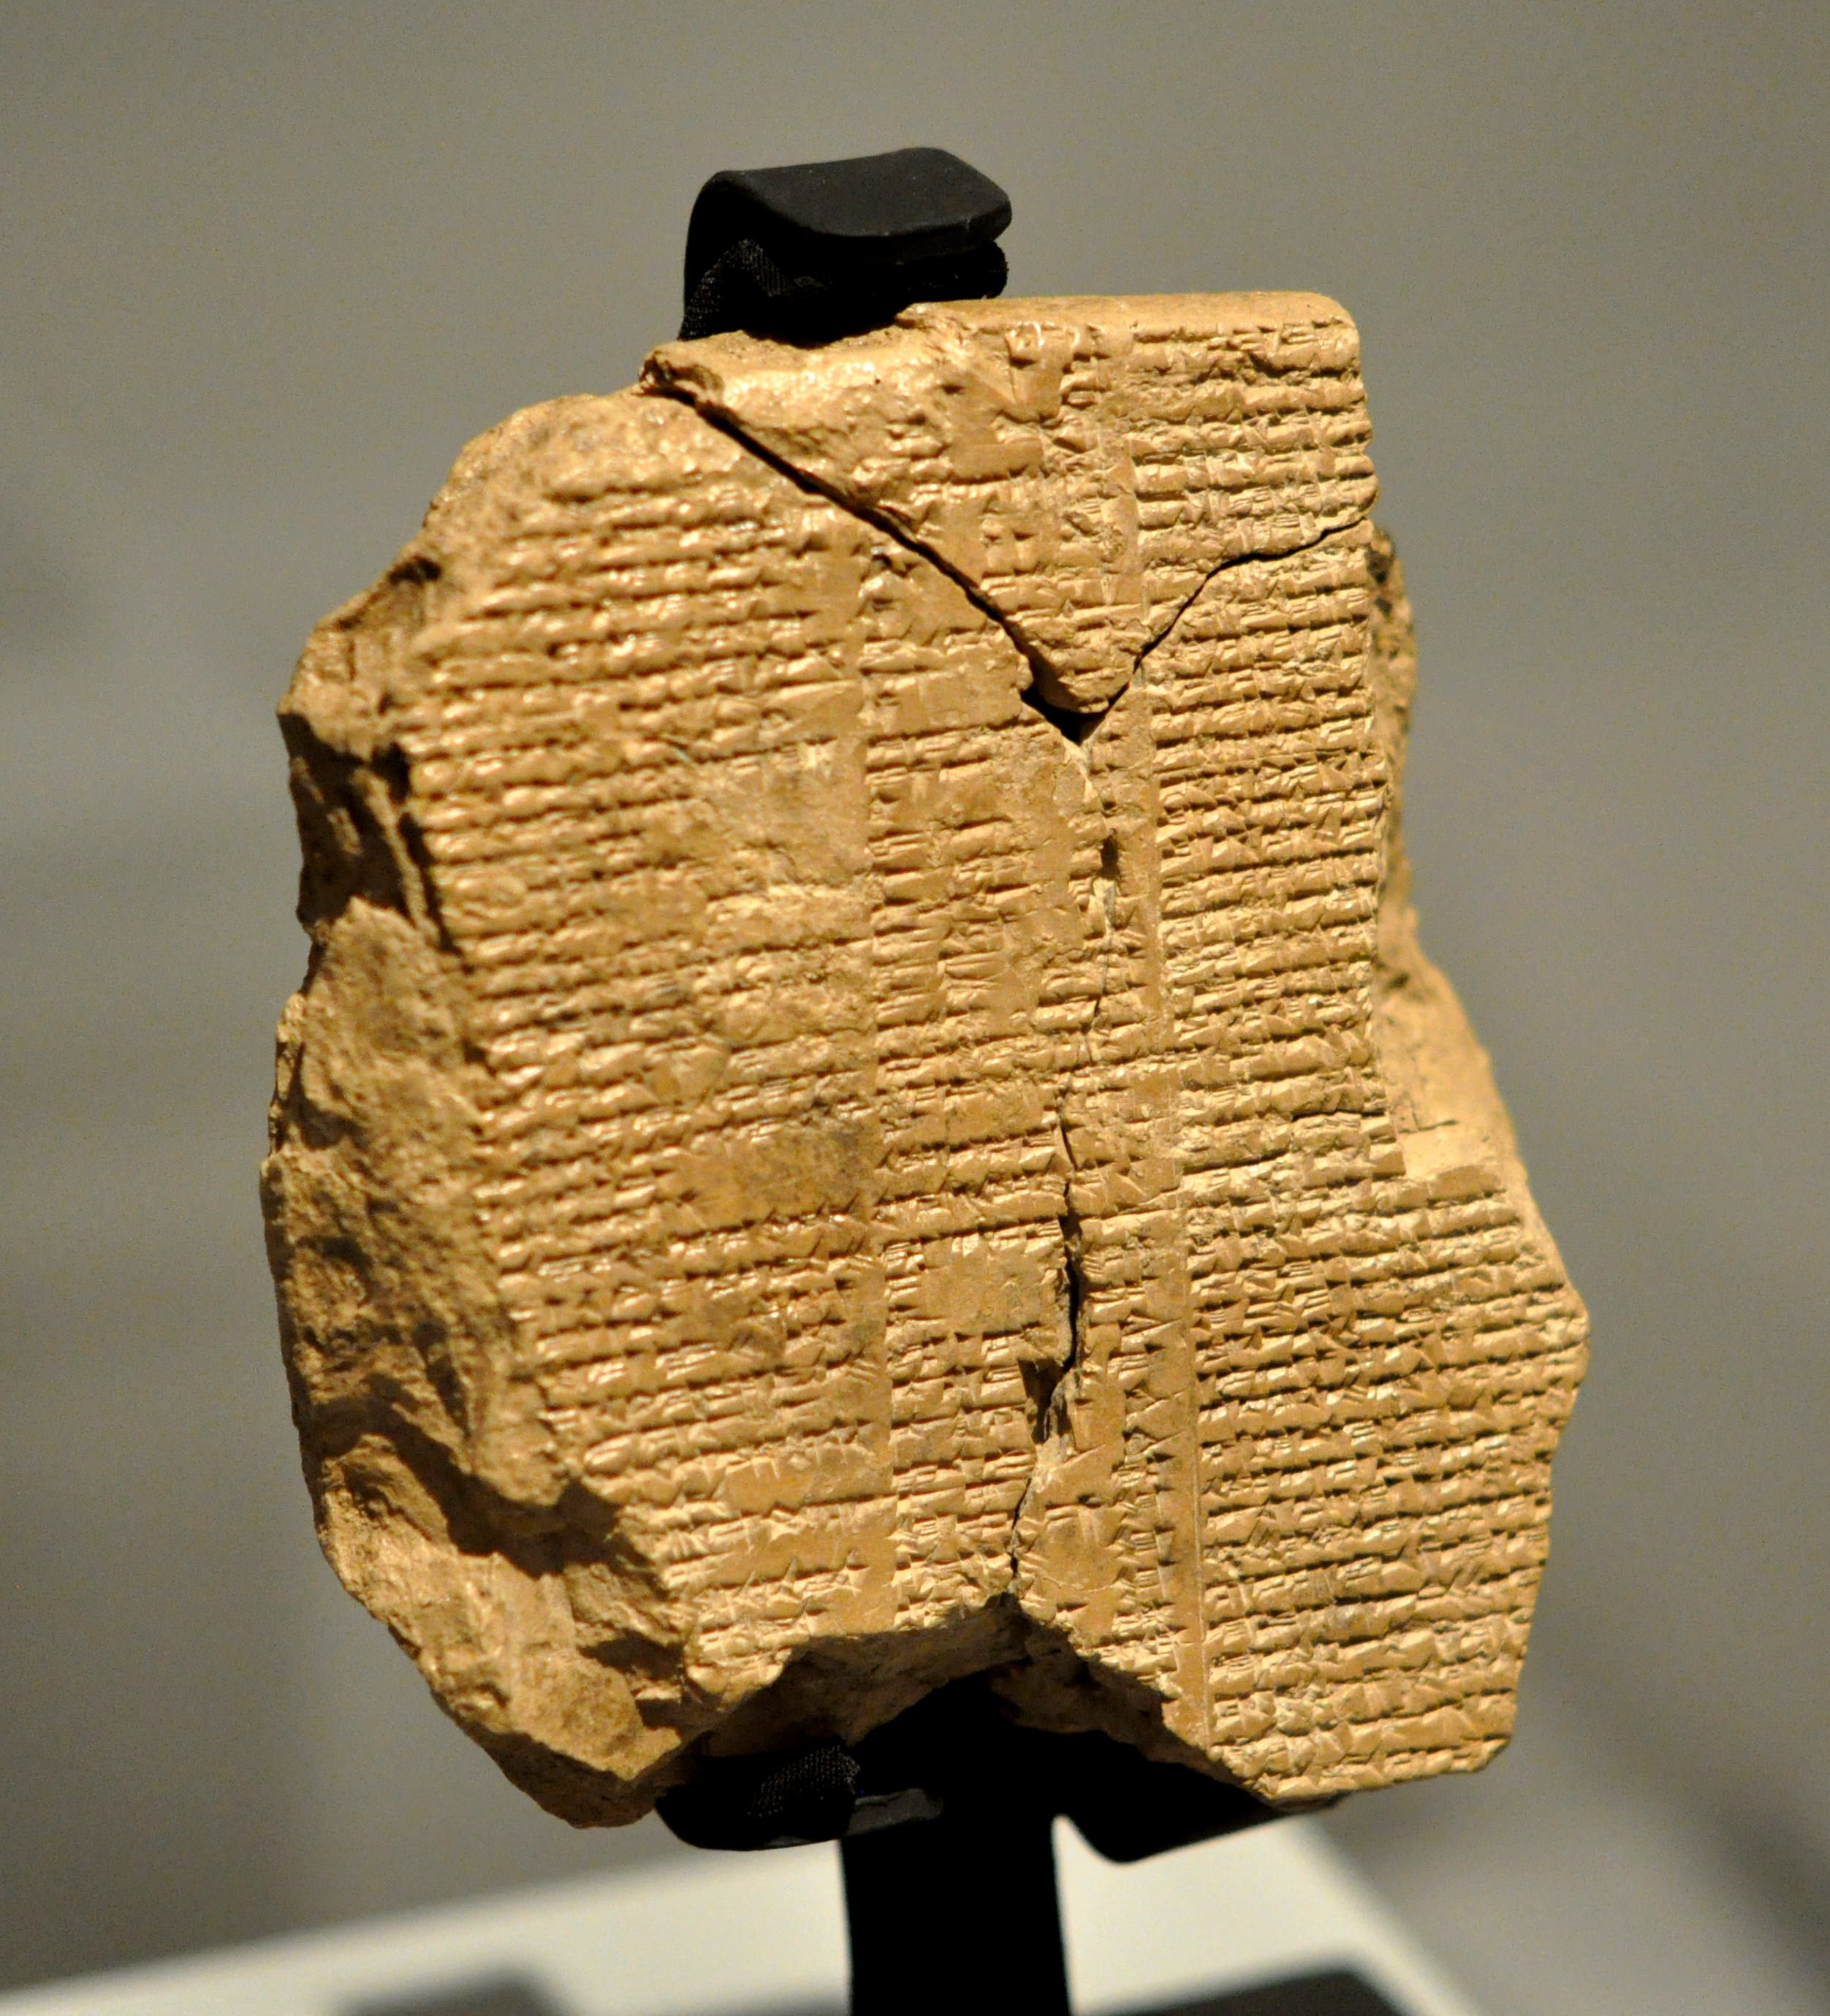 the epic of gilgamesh to the Gilgamesh is the ancient sumerian epic, written some 4,000 years ago on cuneiform clay tablets and rediscovered only in the nineteenth century.